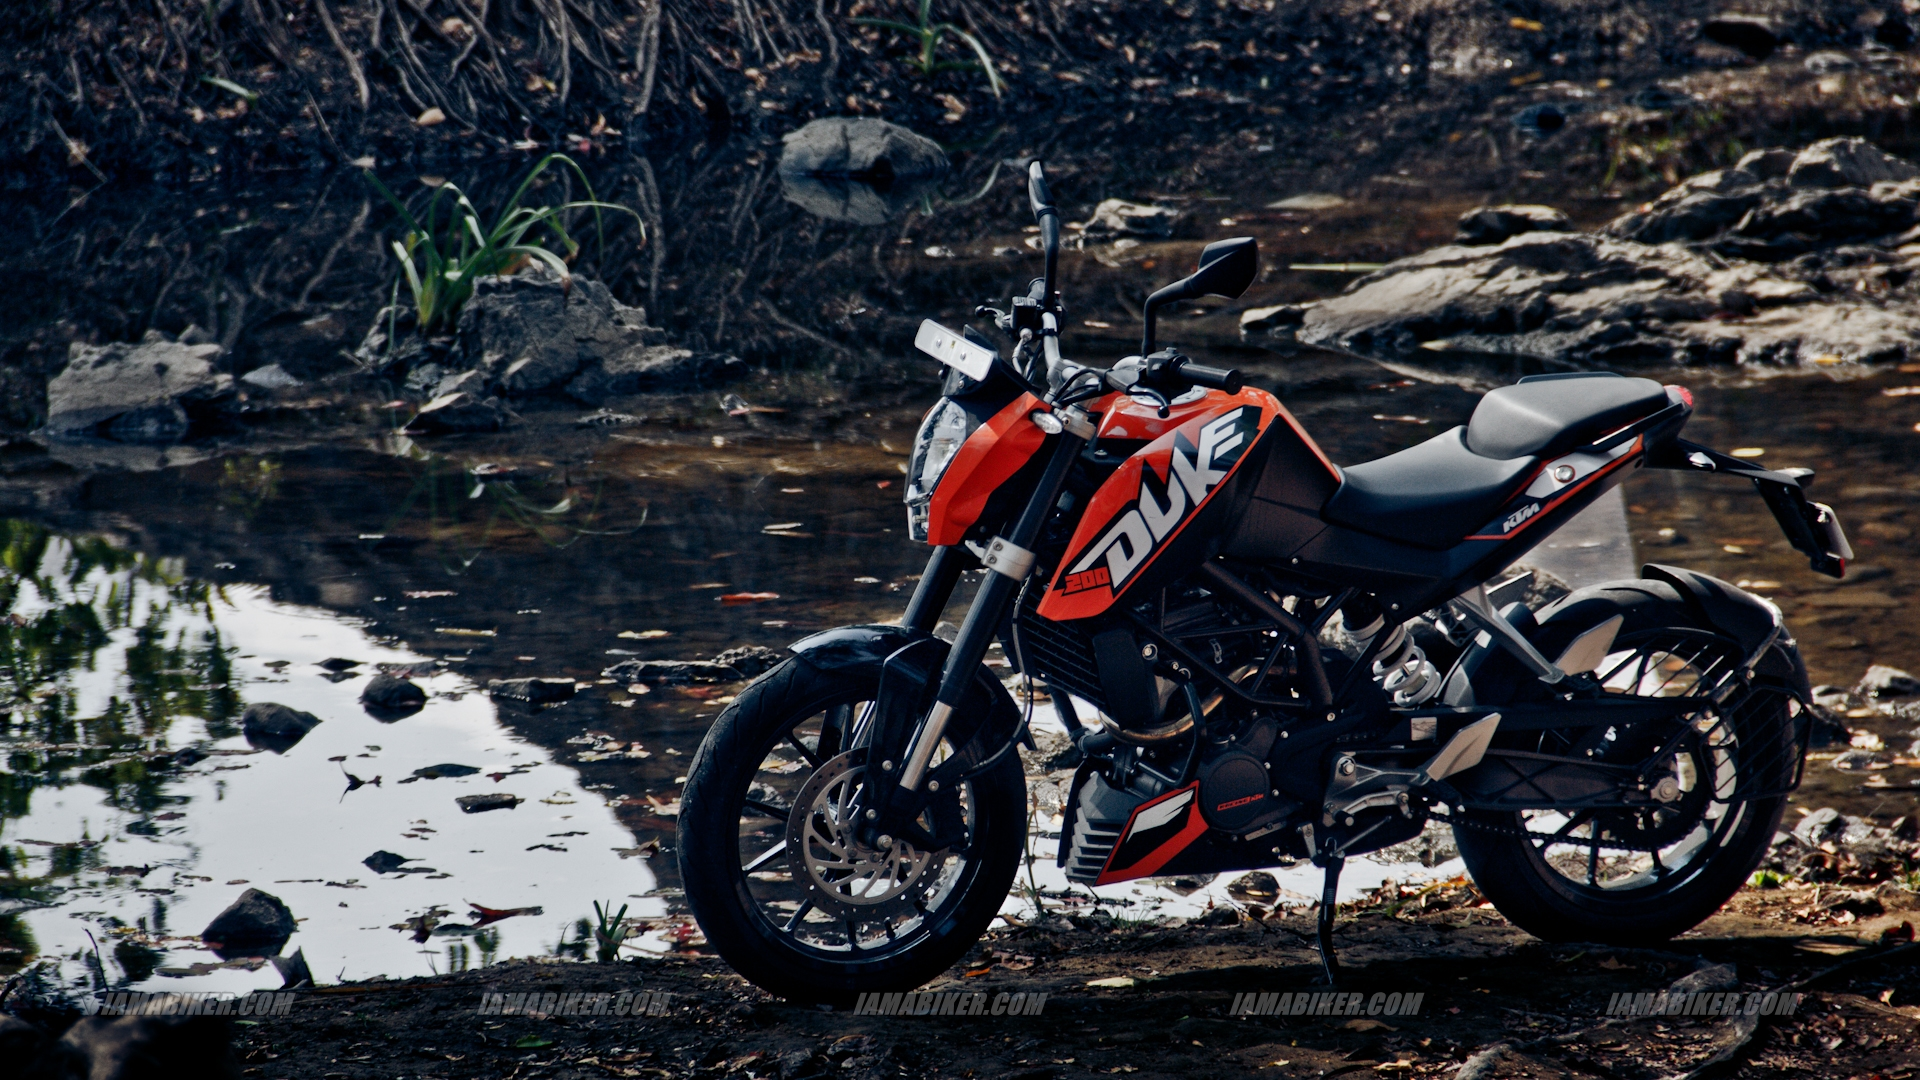 KTM Duke 200 HD wallpaper gallery Click on picture to see high 1920x1080